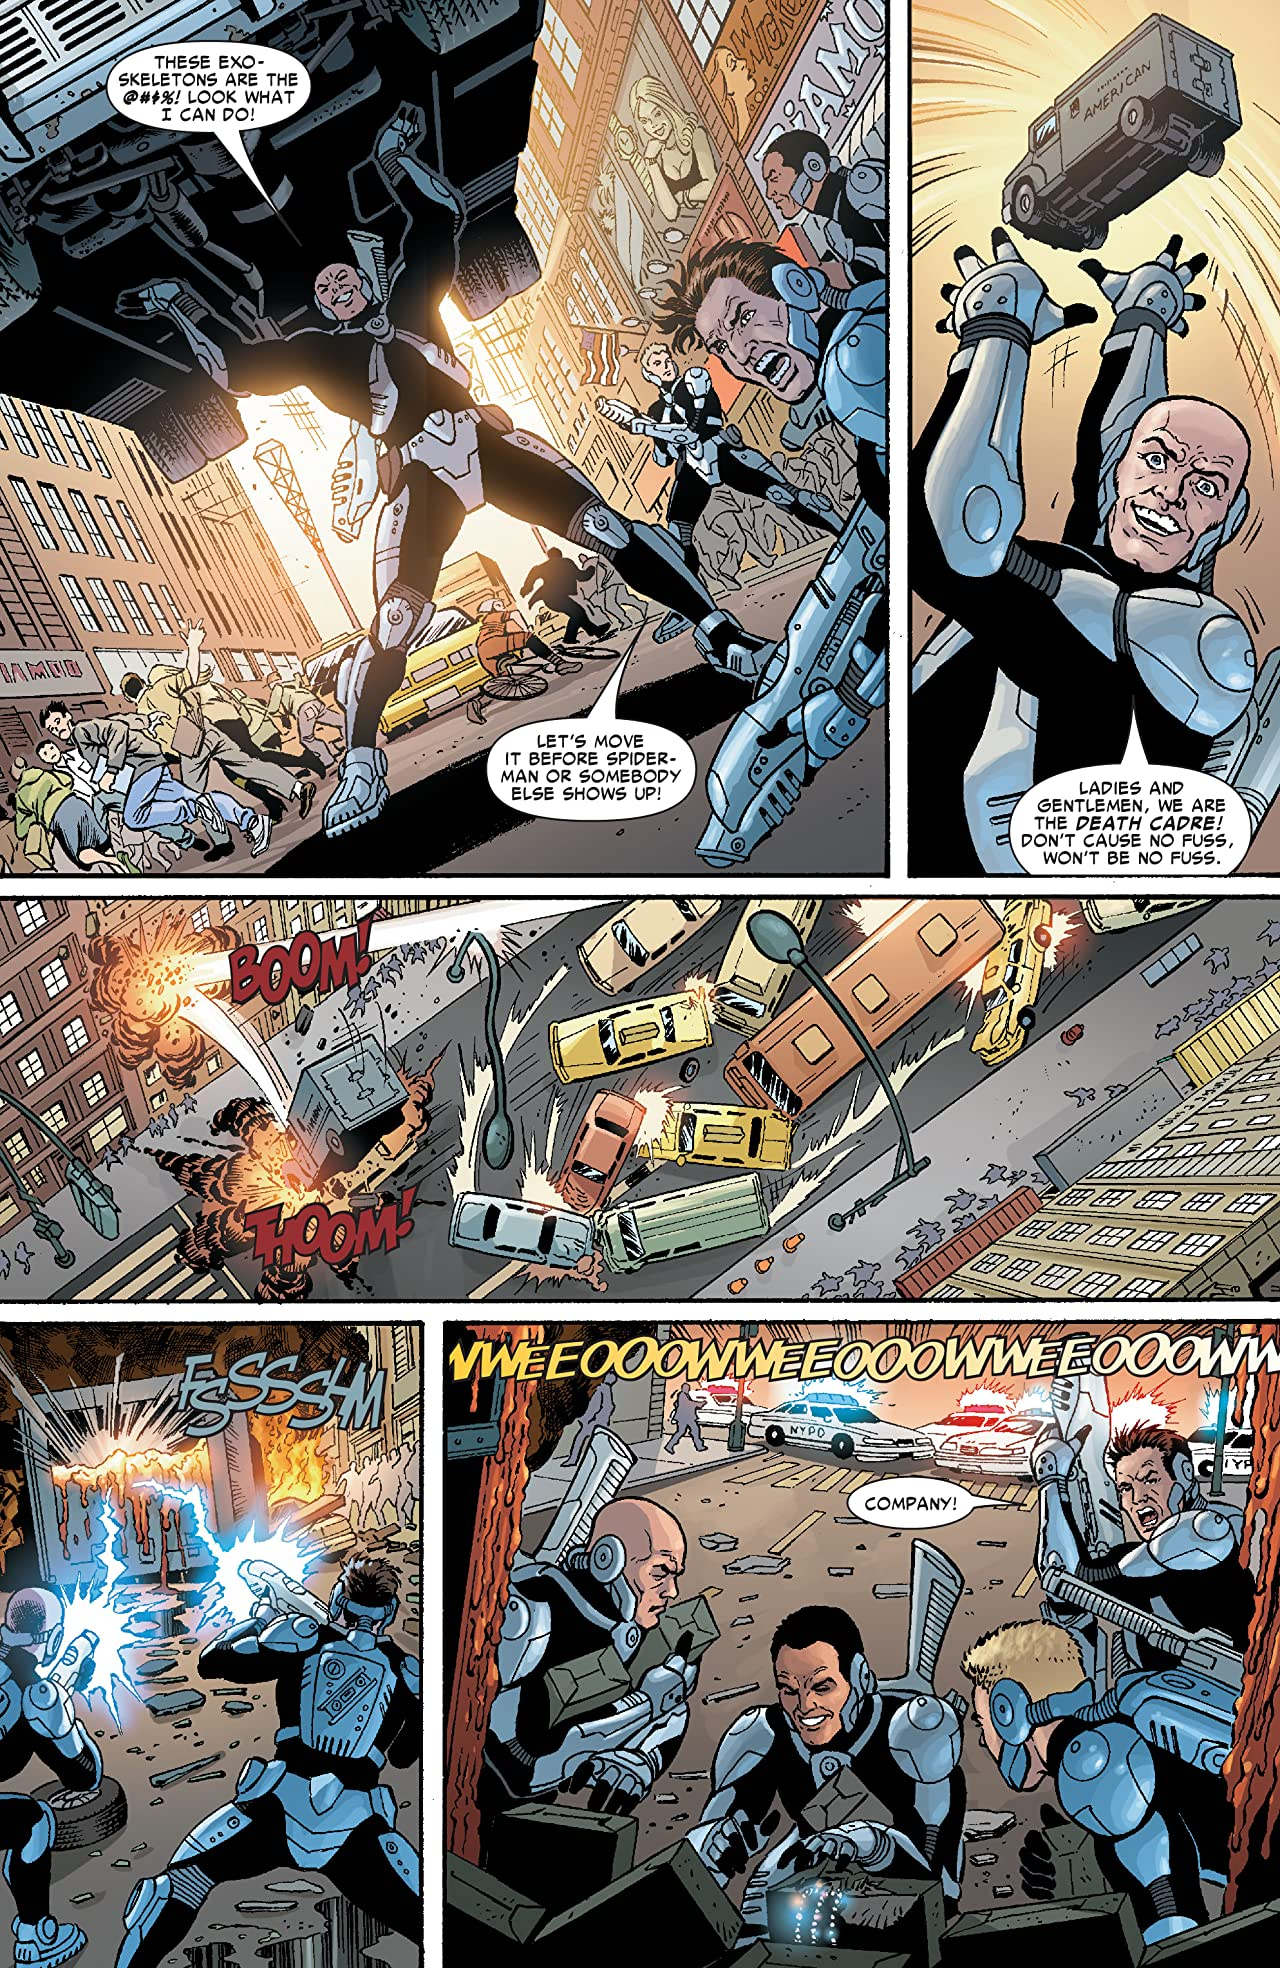 Heroes For Hire Vol. 2: Ahead Of The Curve